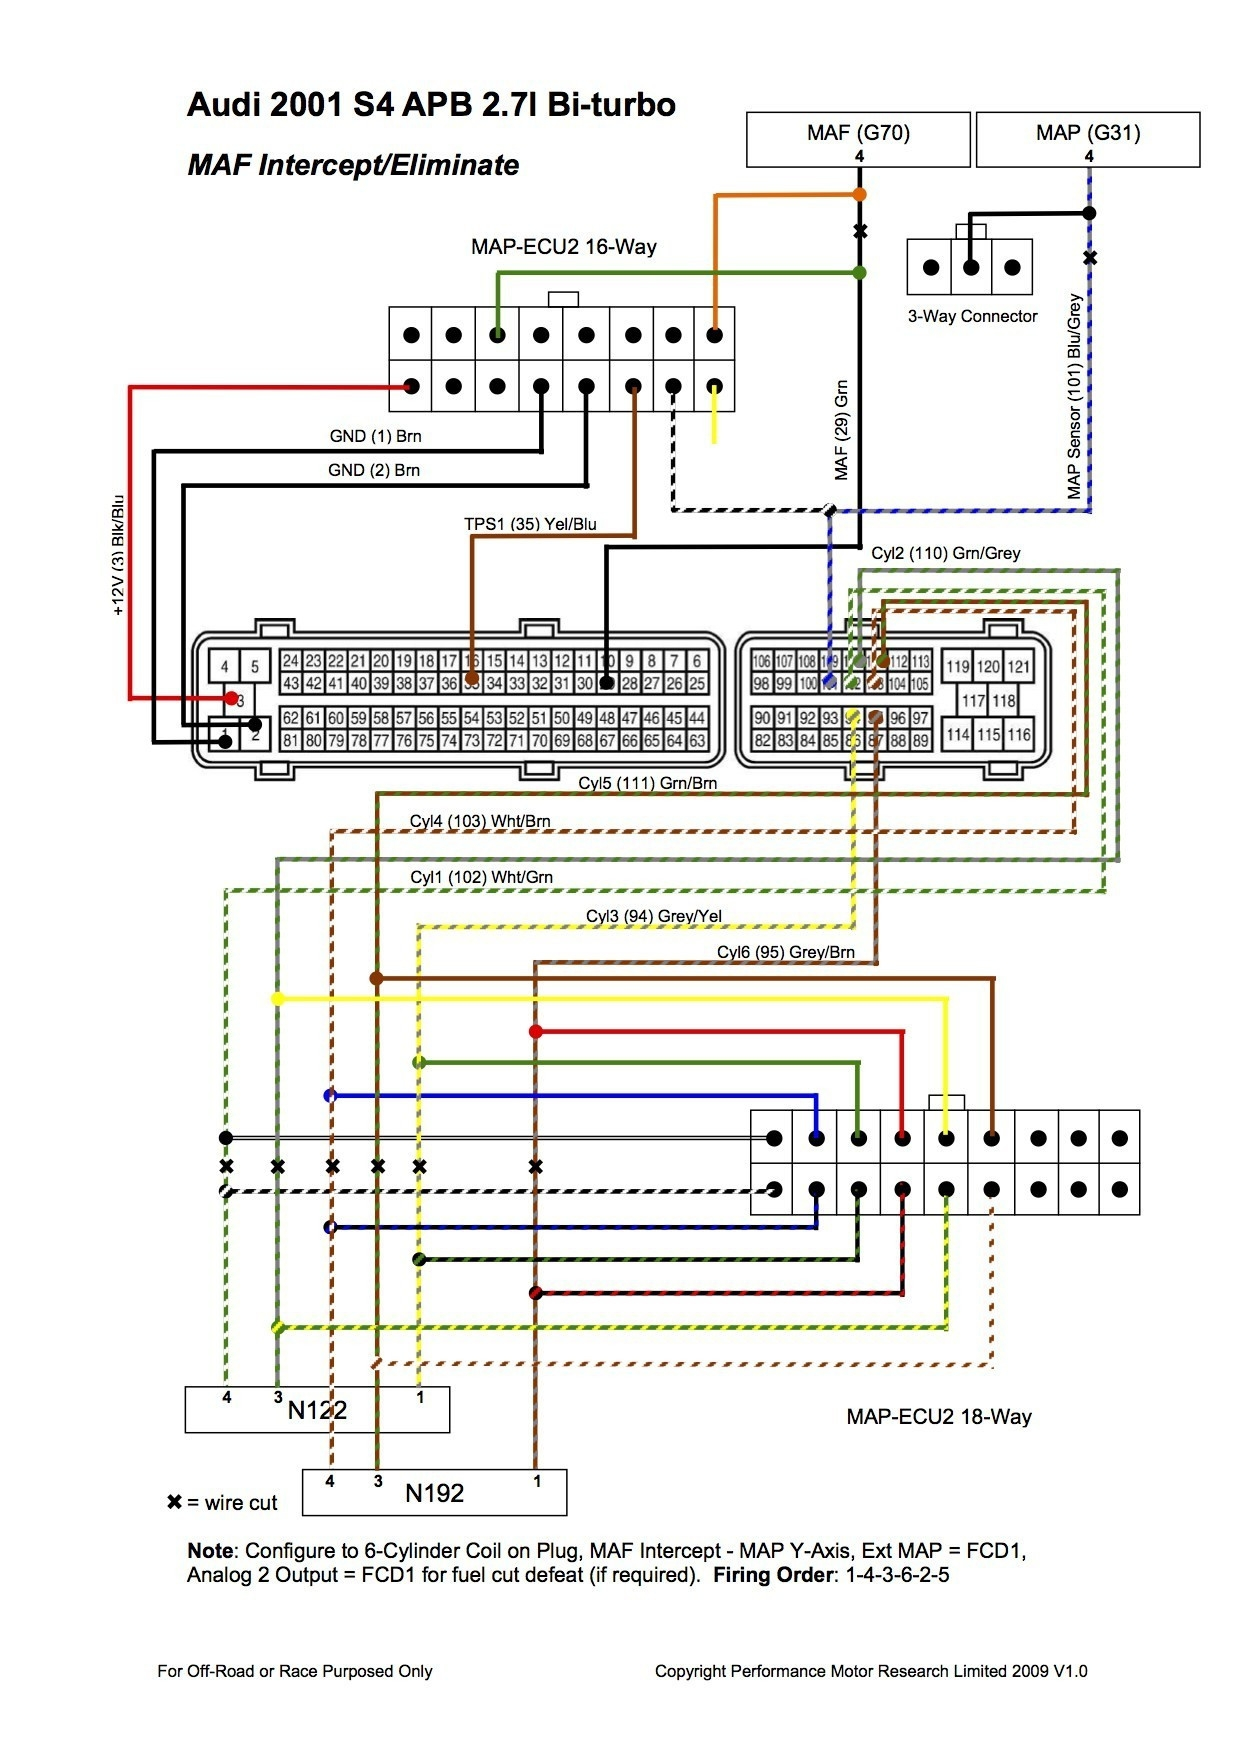 mitsubishi lancer wiring diagram Collection-Wiring Diagram Mitsubishi Lancer top rated Wiring Diagram for Mitsubishi Lancer Glxi Fresh 1997 Mitsubishi 8-j